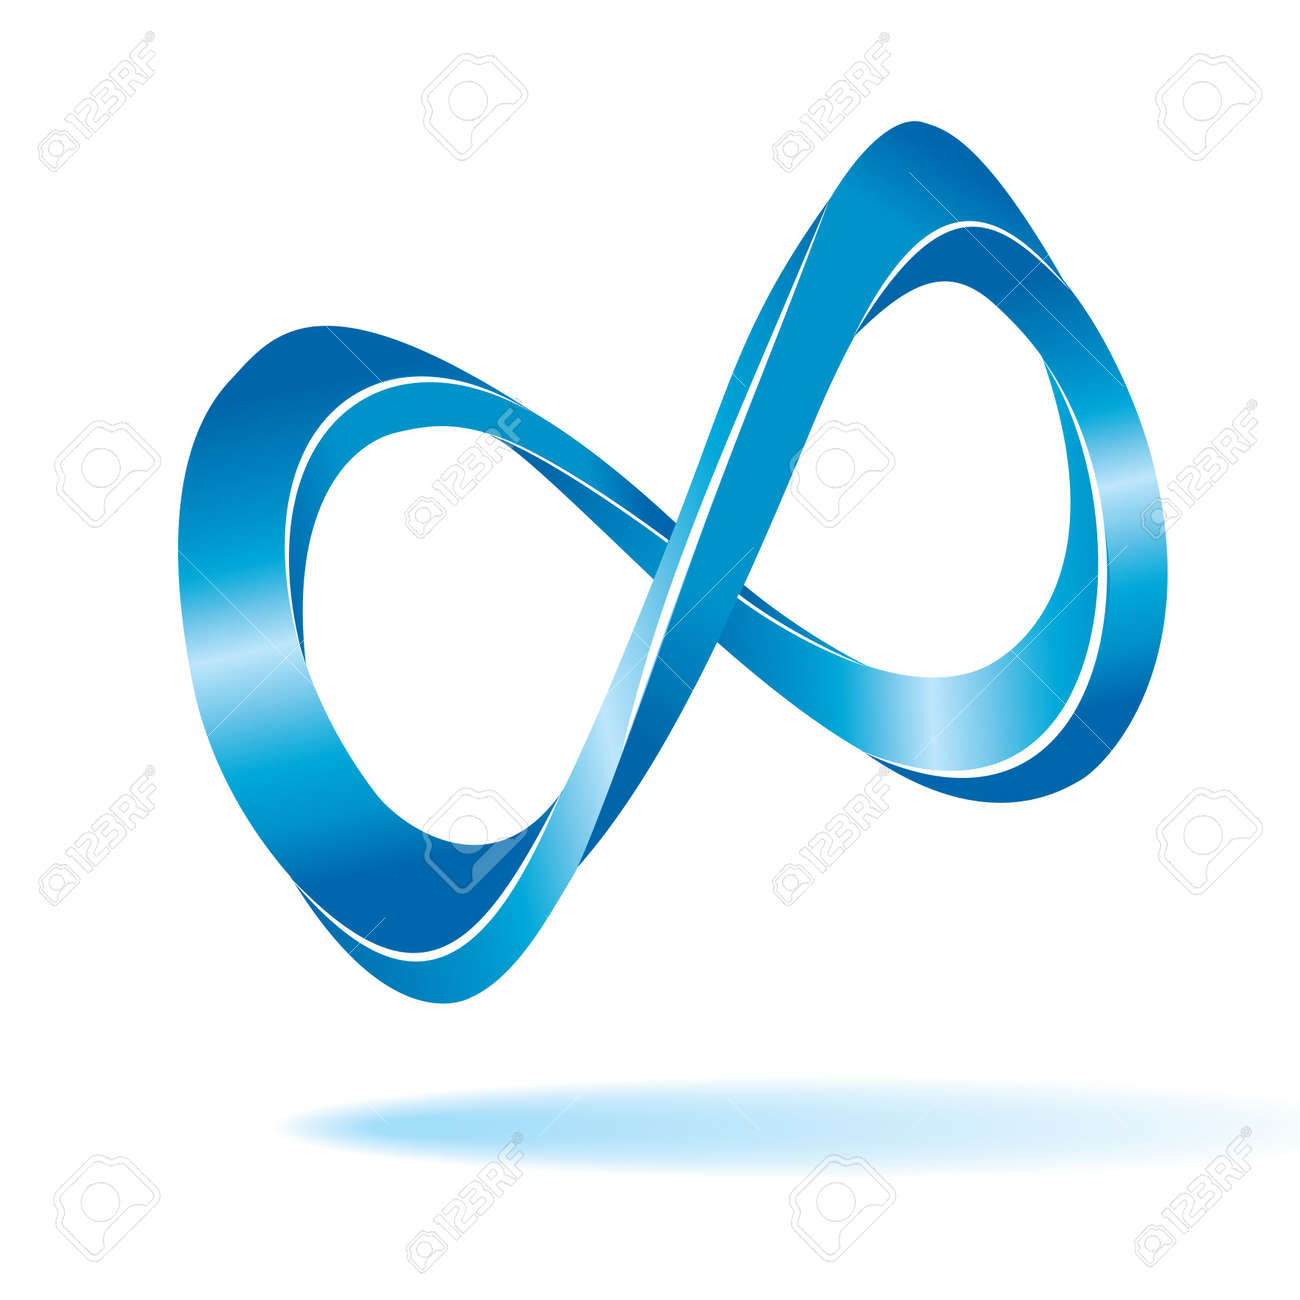 Blue Infinity Sign Royalty Free Cliparts, Vectors, And Stock ...